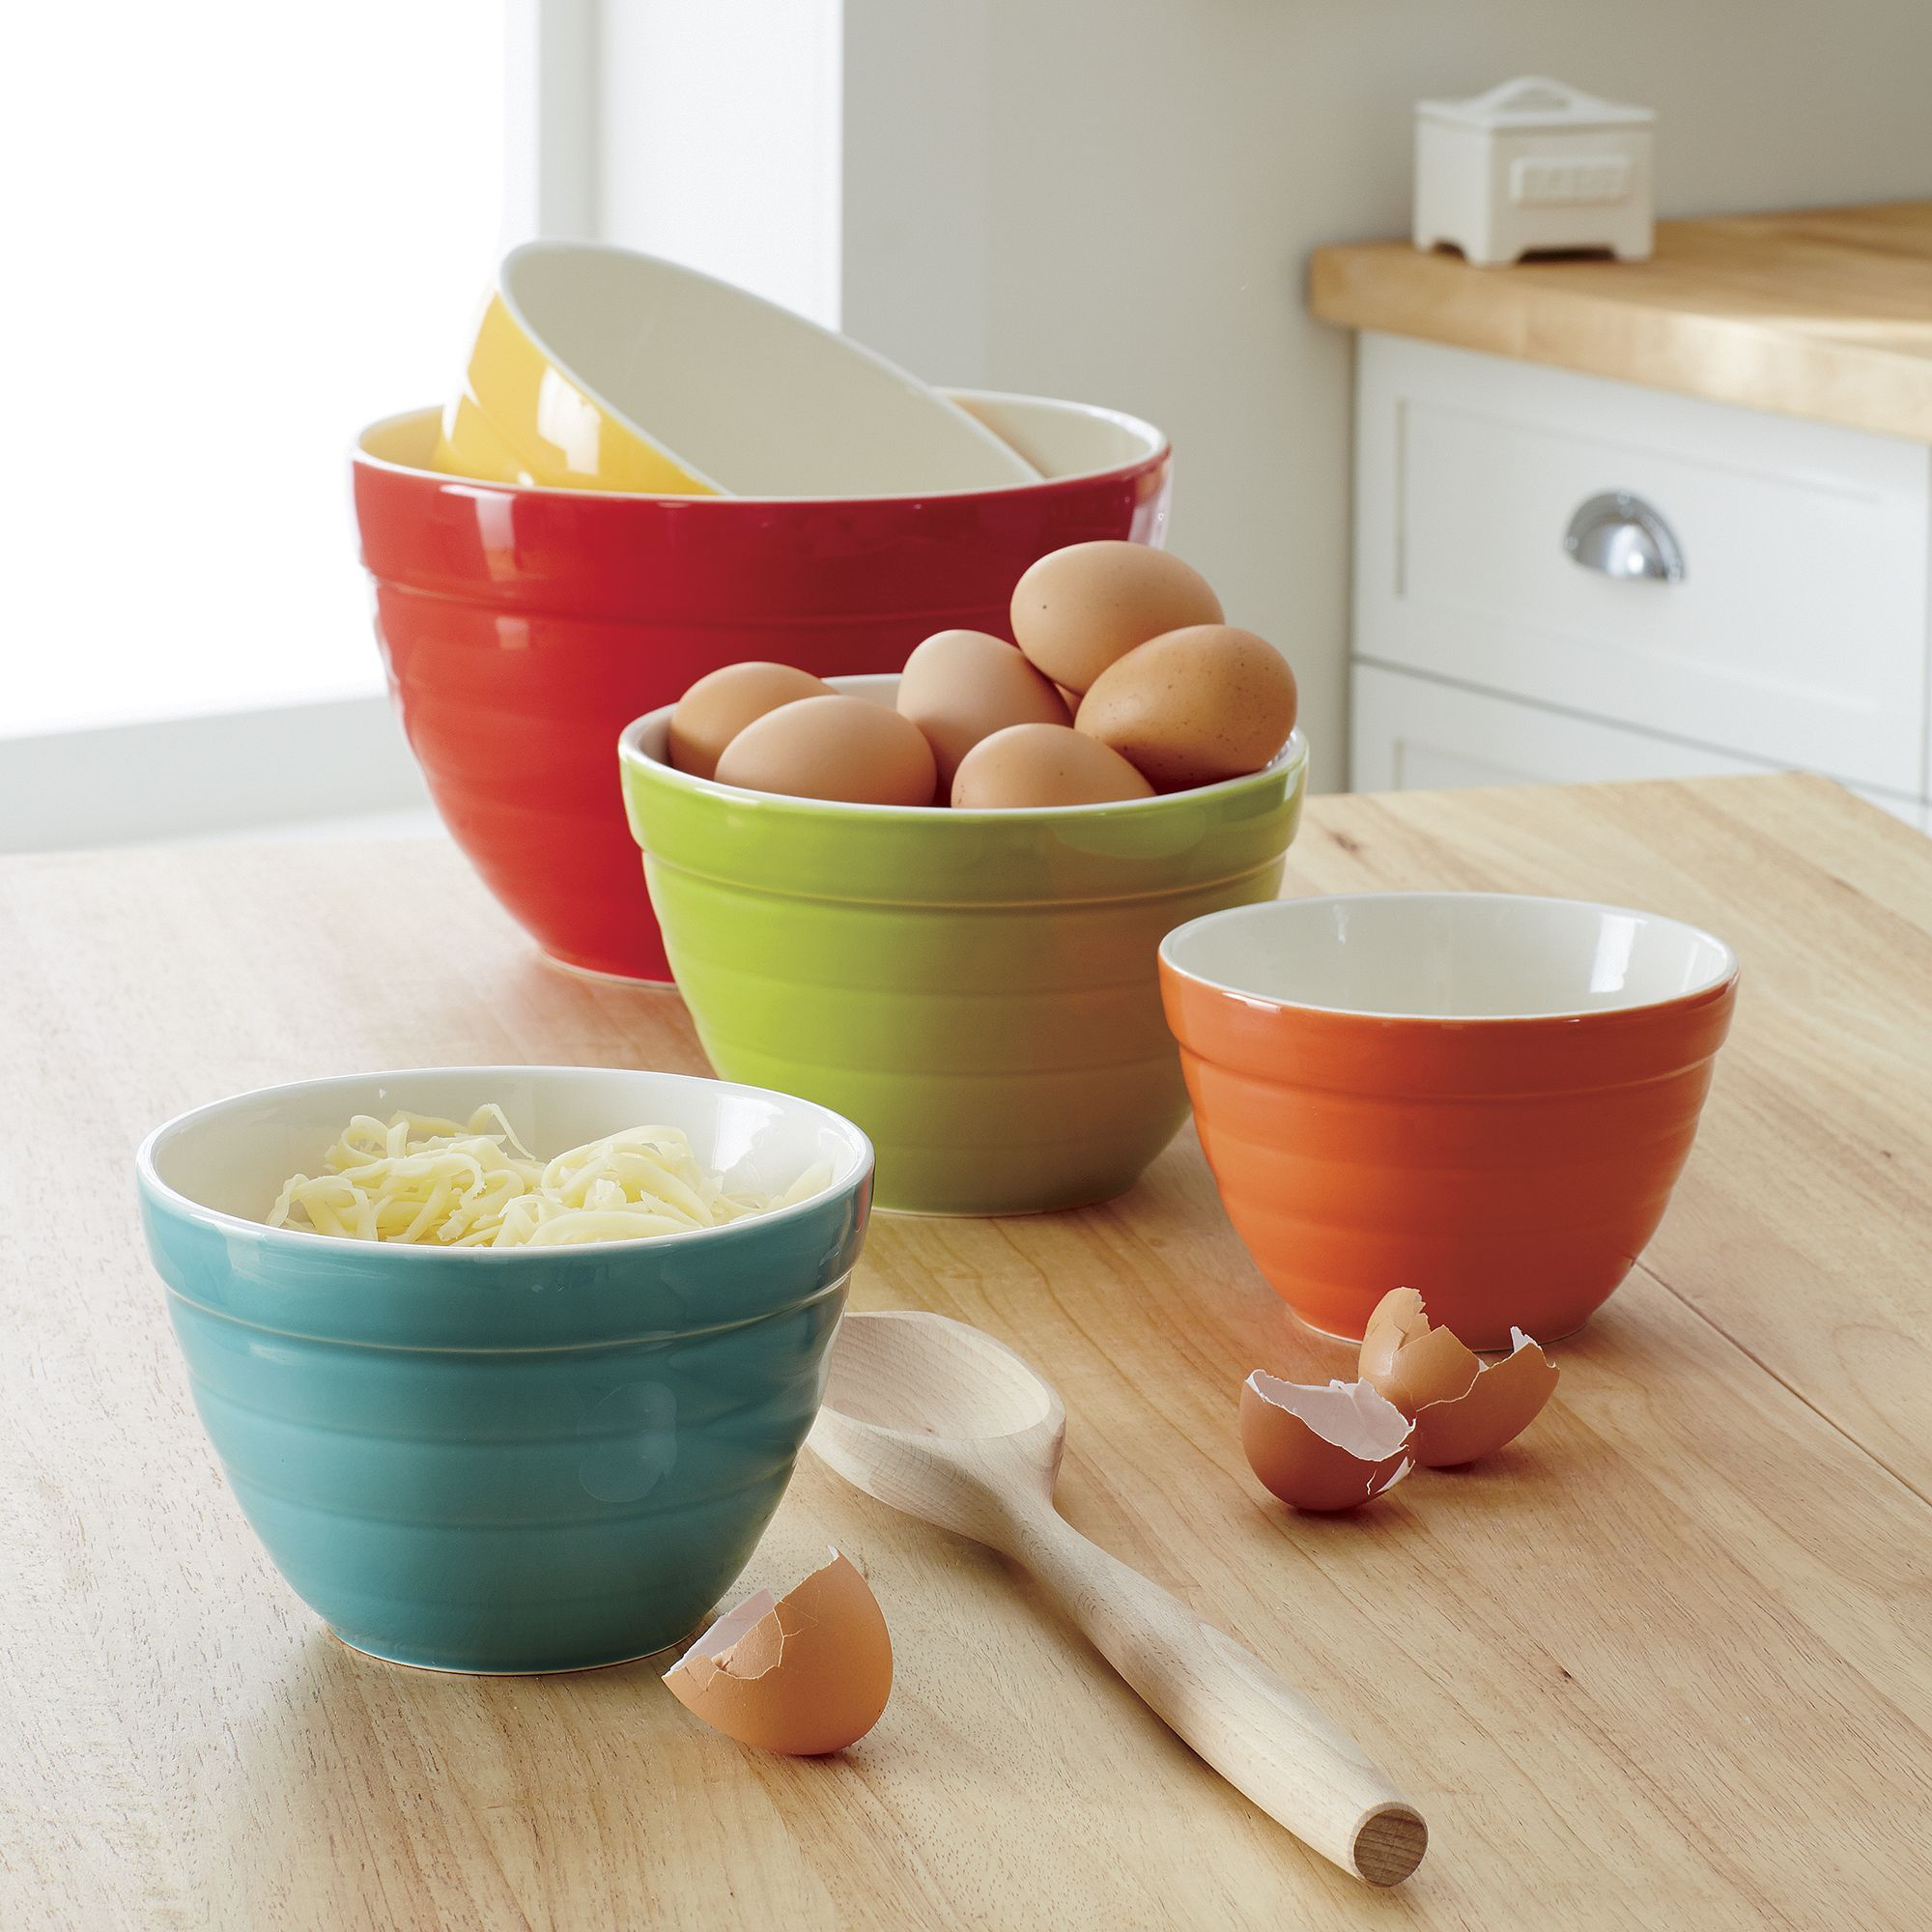 Set Of 5 Baker Nesting Bowls Crate And Barrel Crates House Beautiful Kitchens